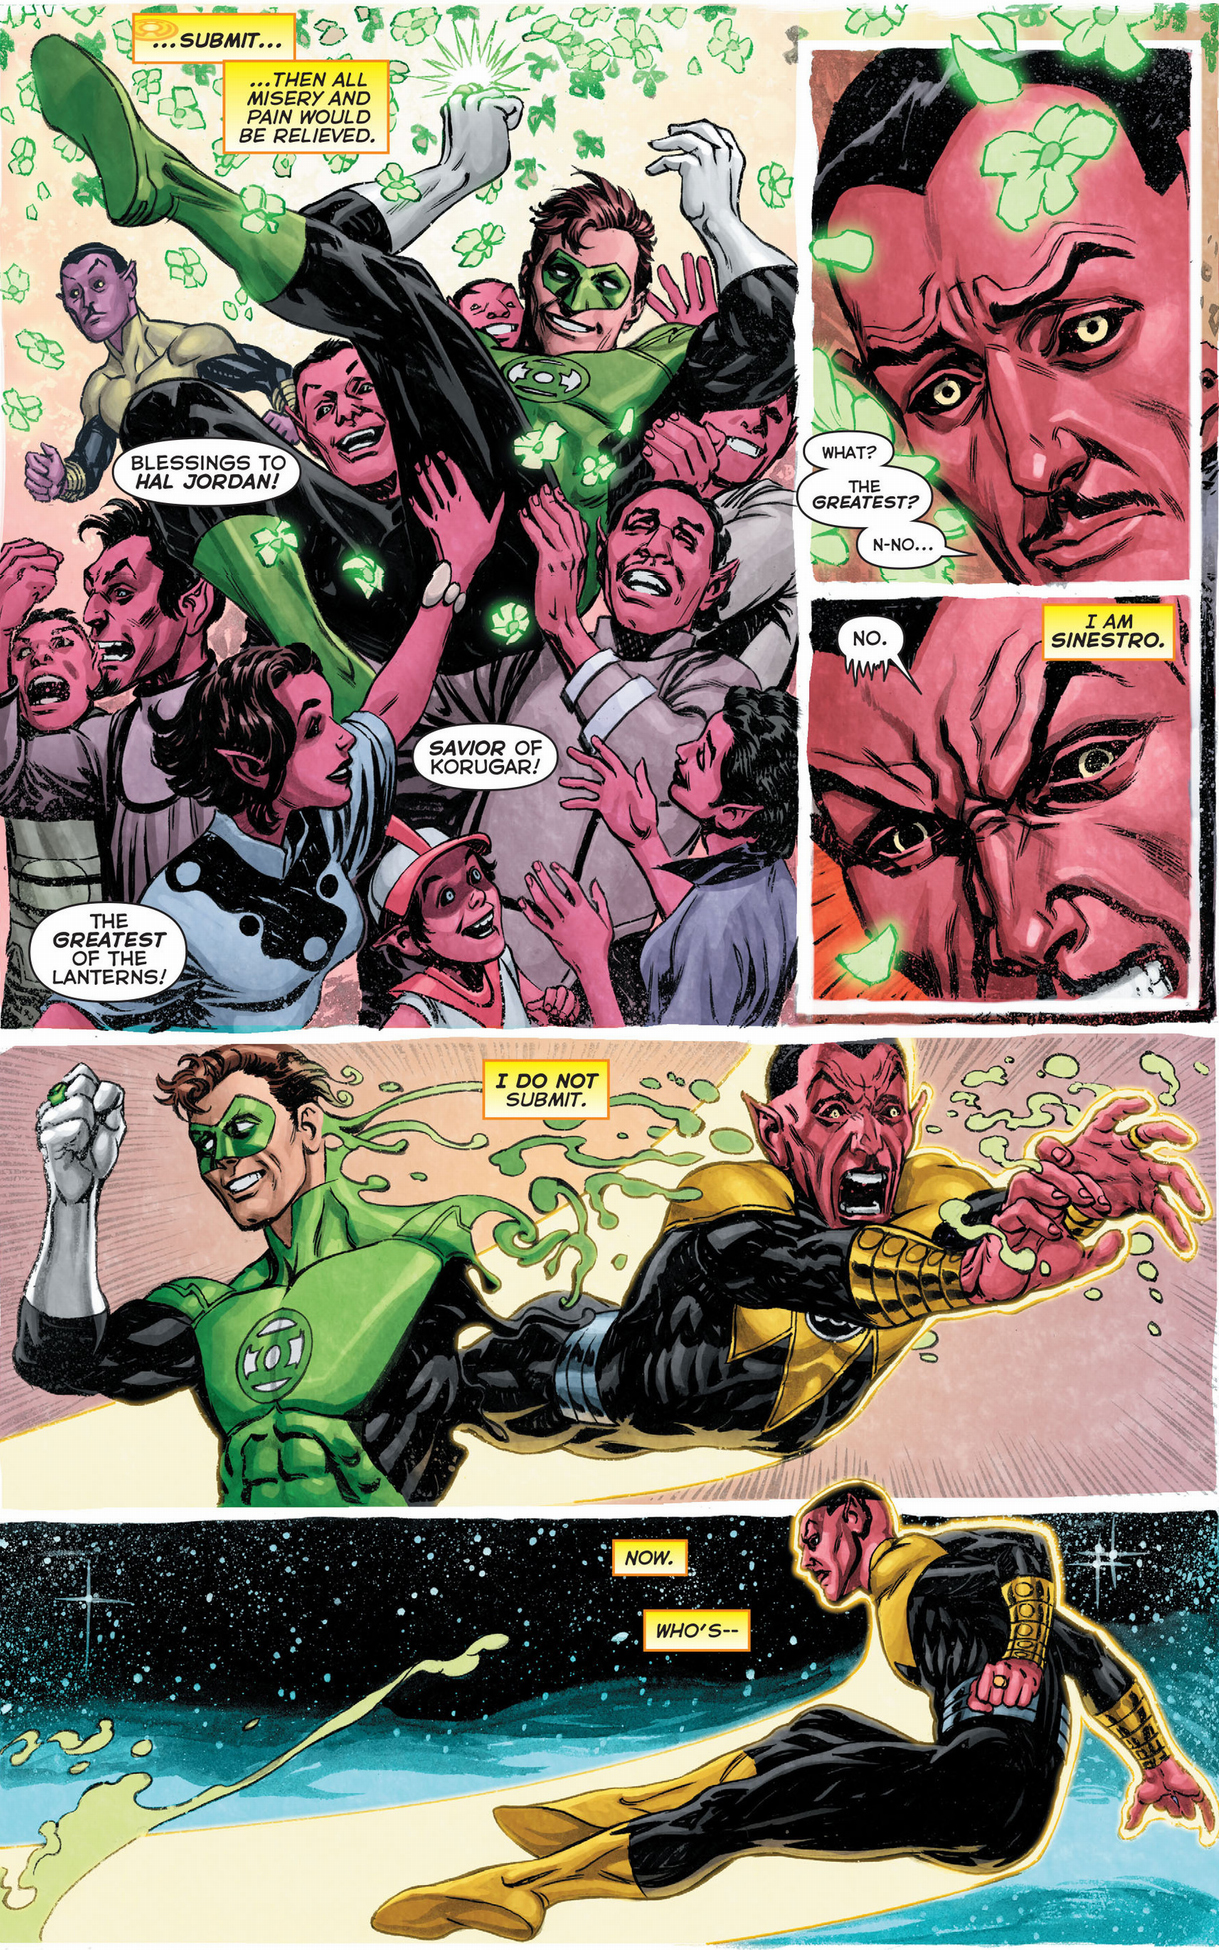 Why Sinestro Is Immune To The Paling's Purge